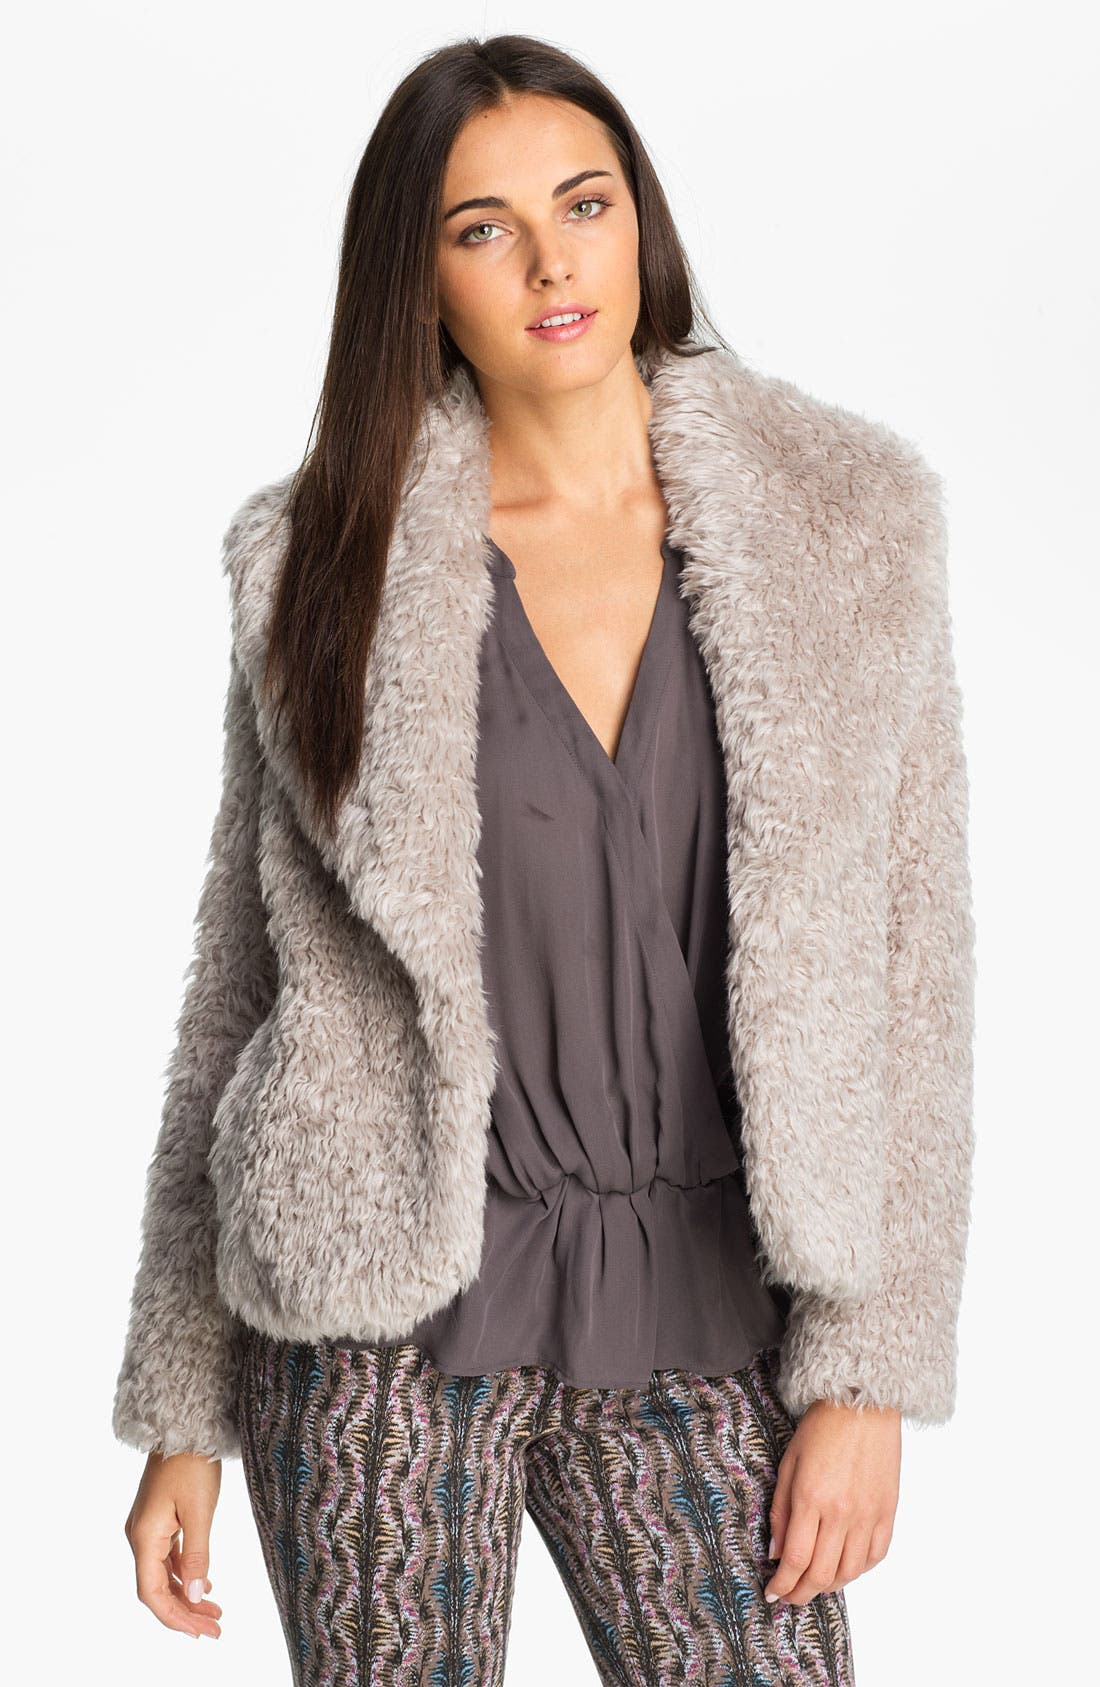 Alternate Image 1 Selected - Laundry by Shelli Segal 'Oslo' Faux Fur Jacket